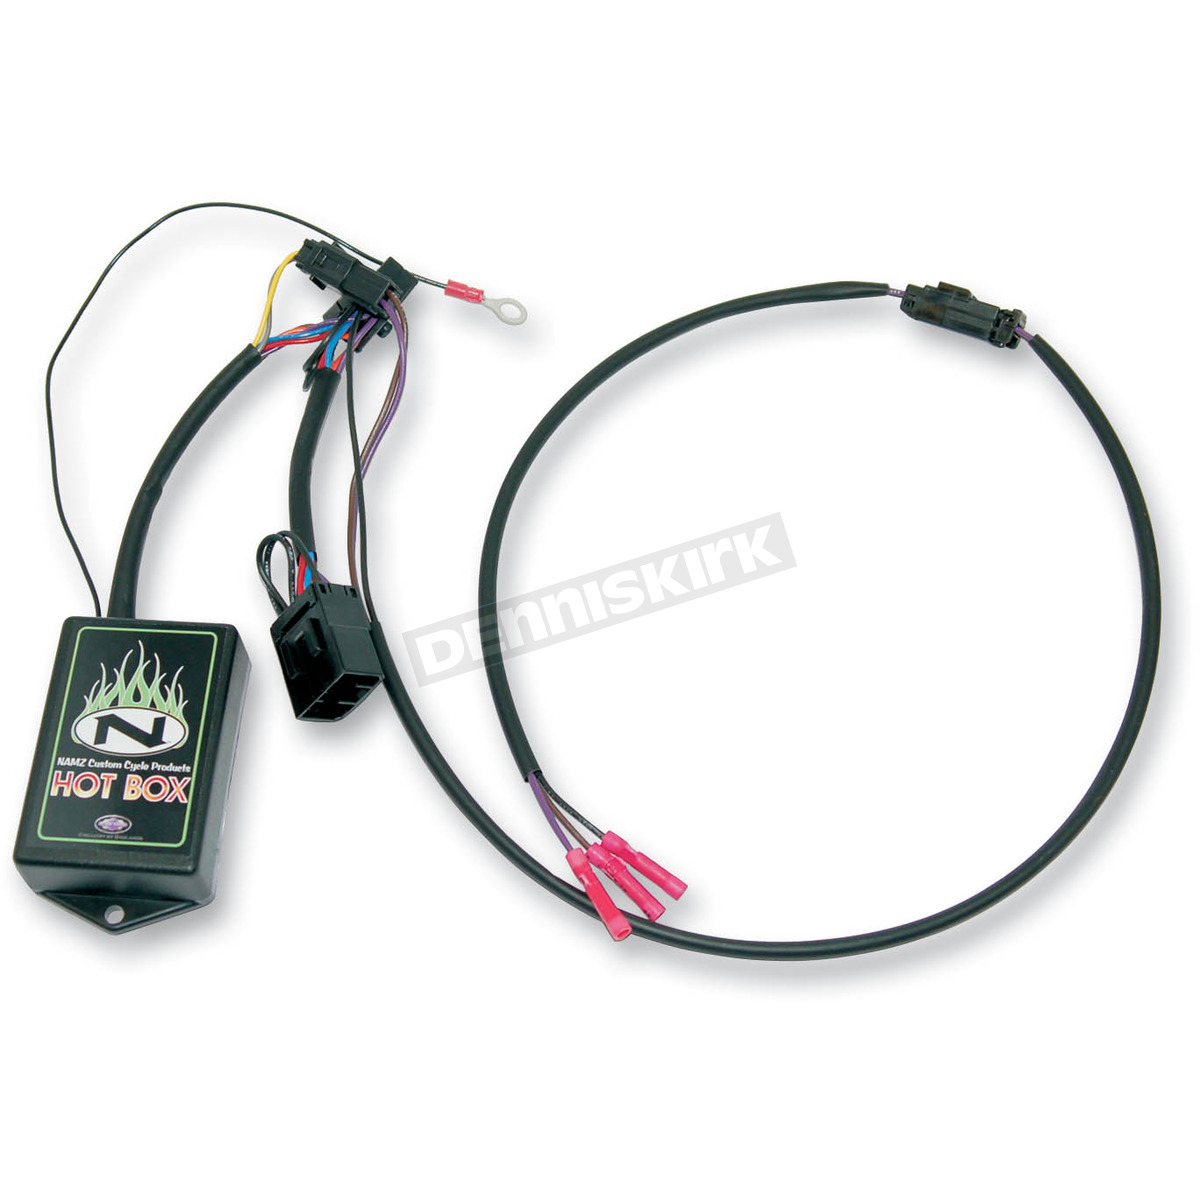 namz custom cycle products tour pak disconnect wiring harness with brake turn running